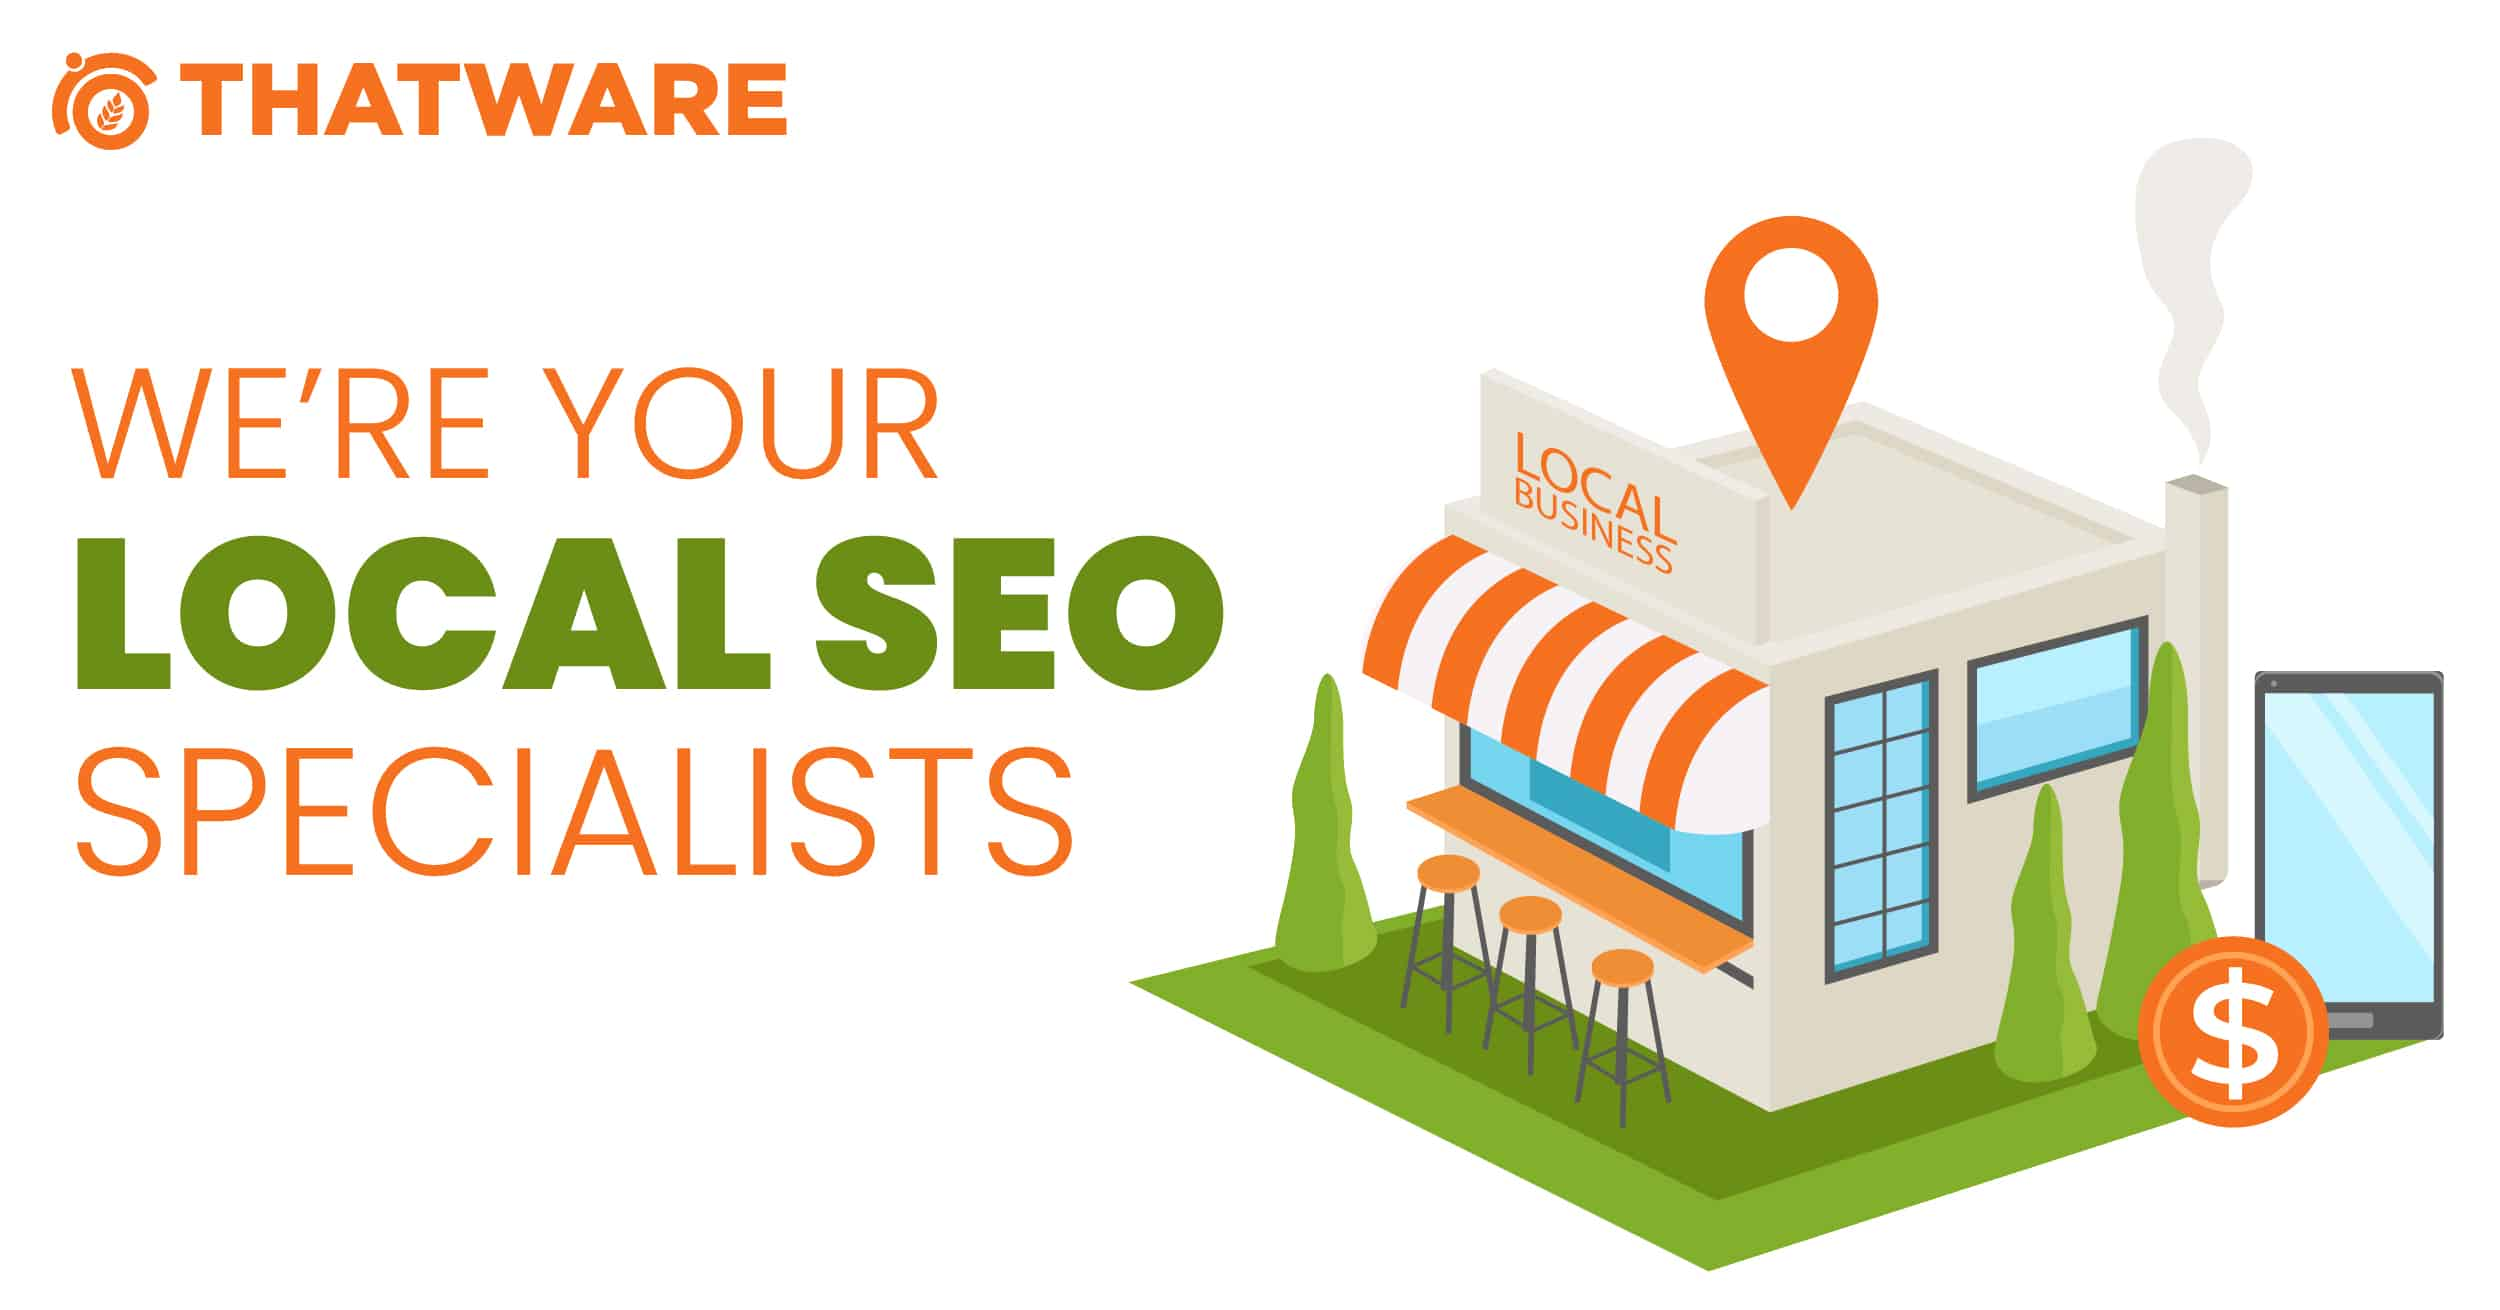 WE'RE YOUR LOCAL SEO SPECIALISTS